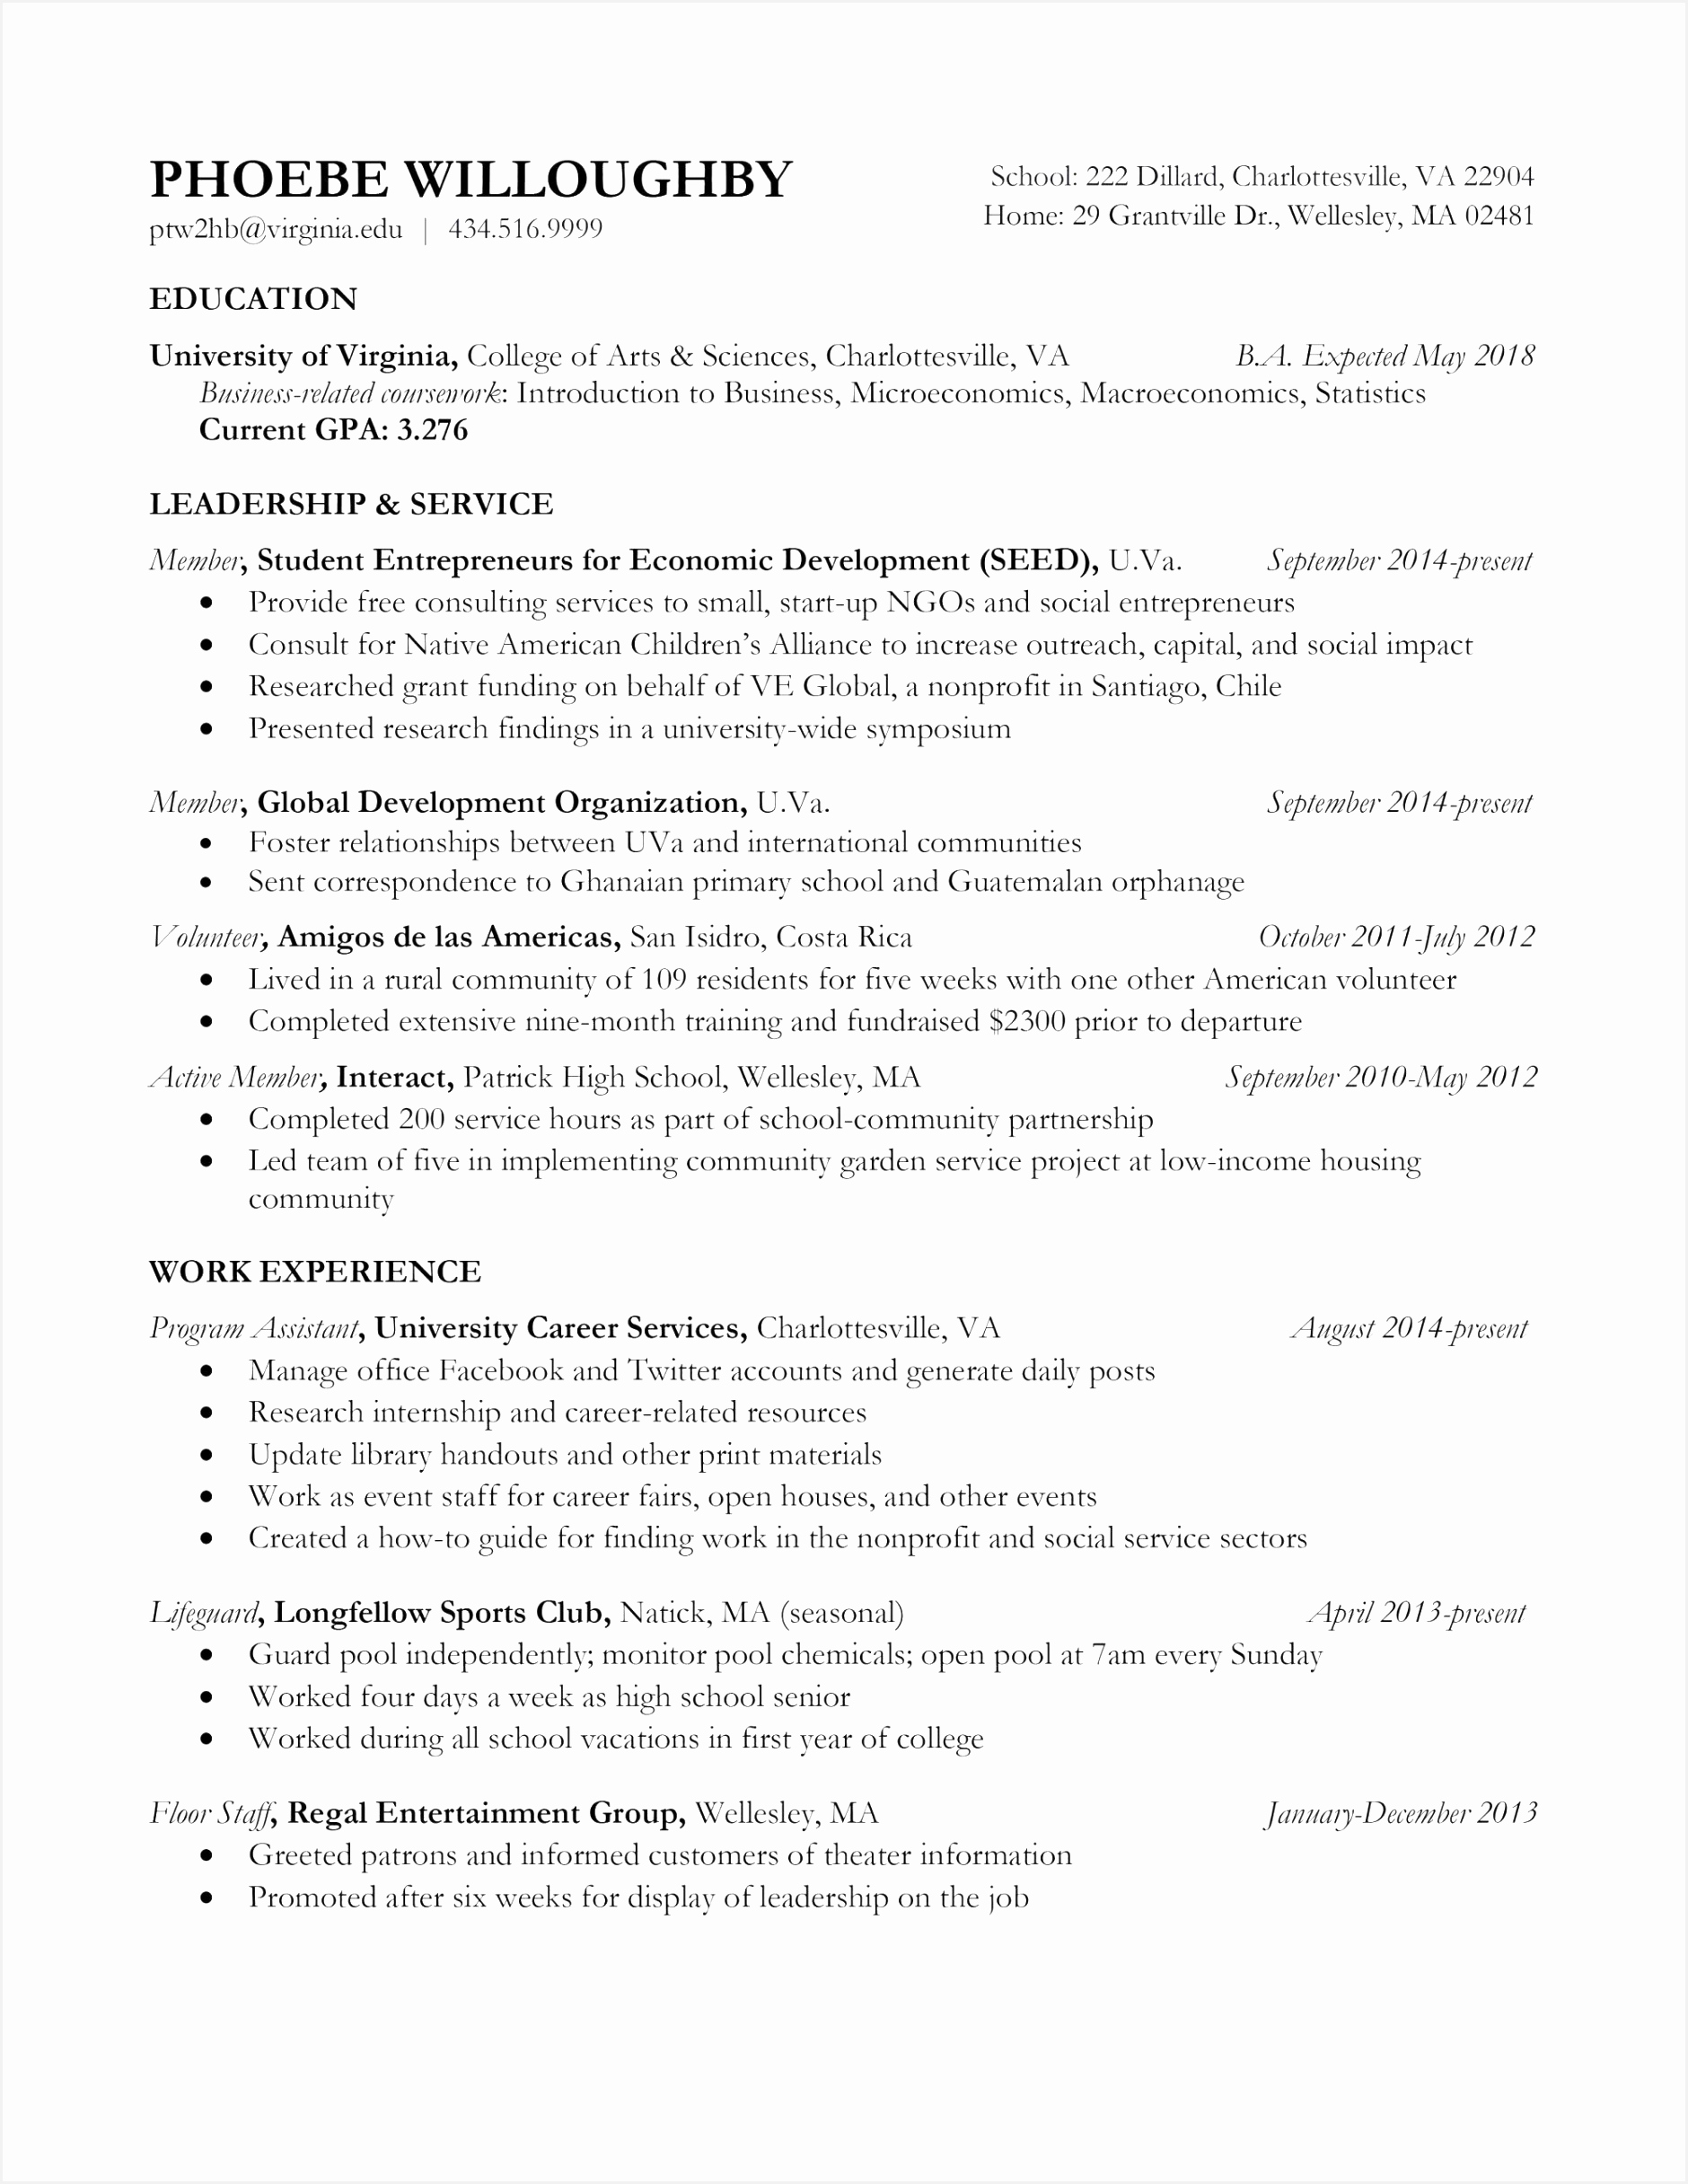 Best Resume Sample 2014 New Chef Resume Samples Awesome Retail Resume 0d Archives Luxus The Best 24321880ckgkm